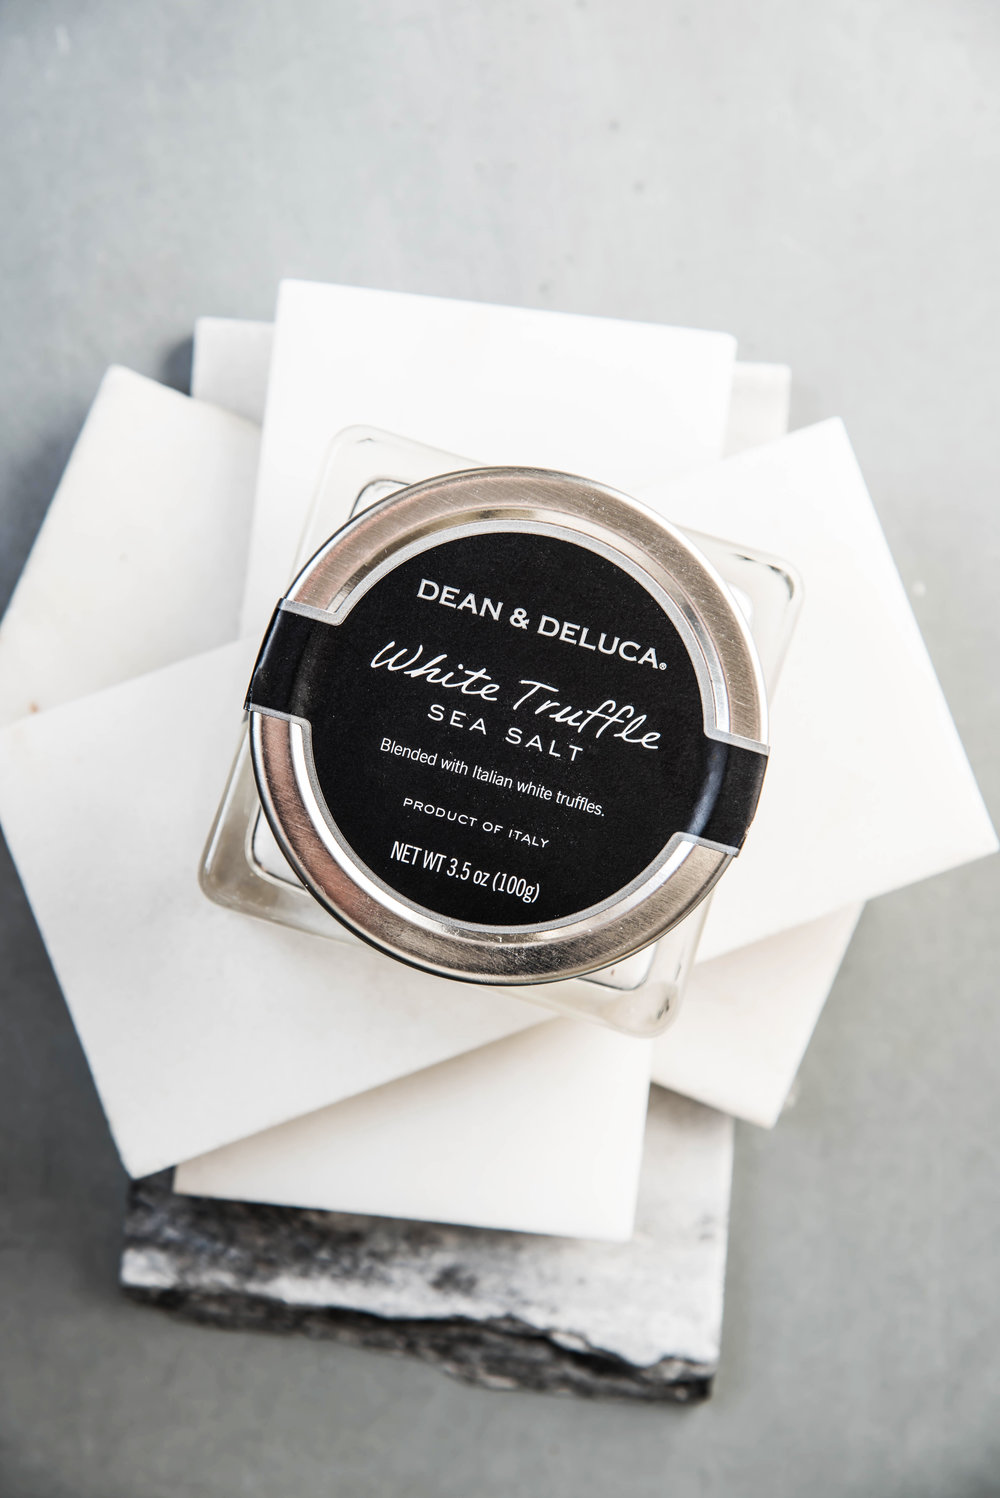 ROSE & IVY Journal Dean & Deluca White Truffle Salt